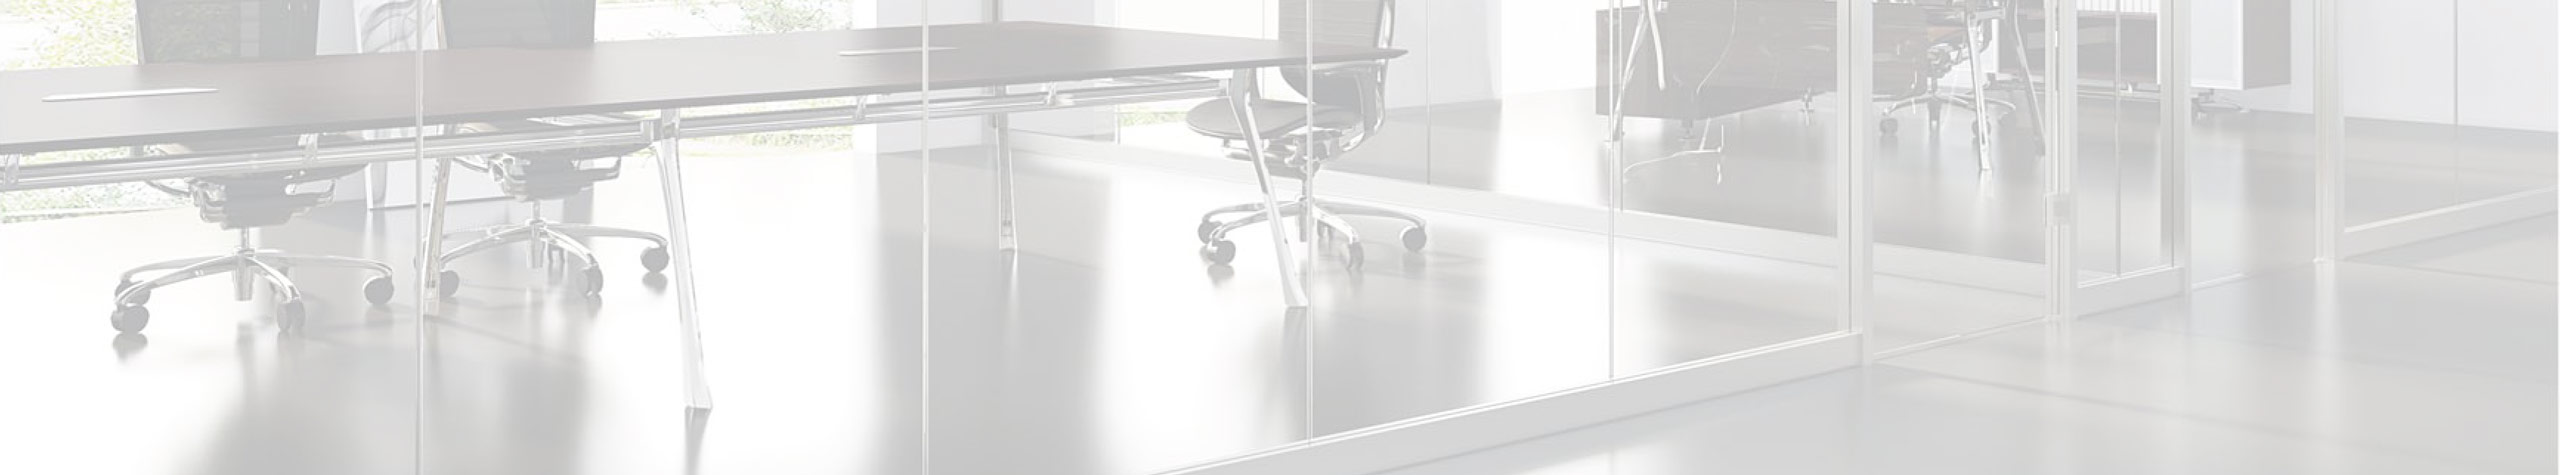 wall partition systems, door hardware, sliding doors